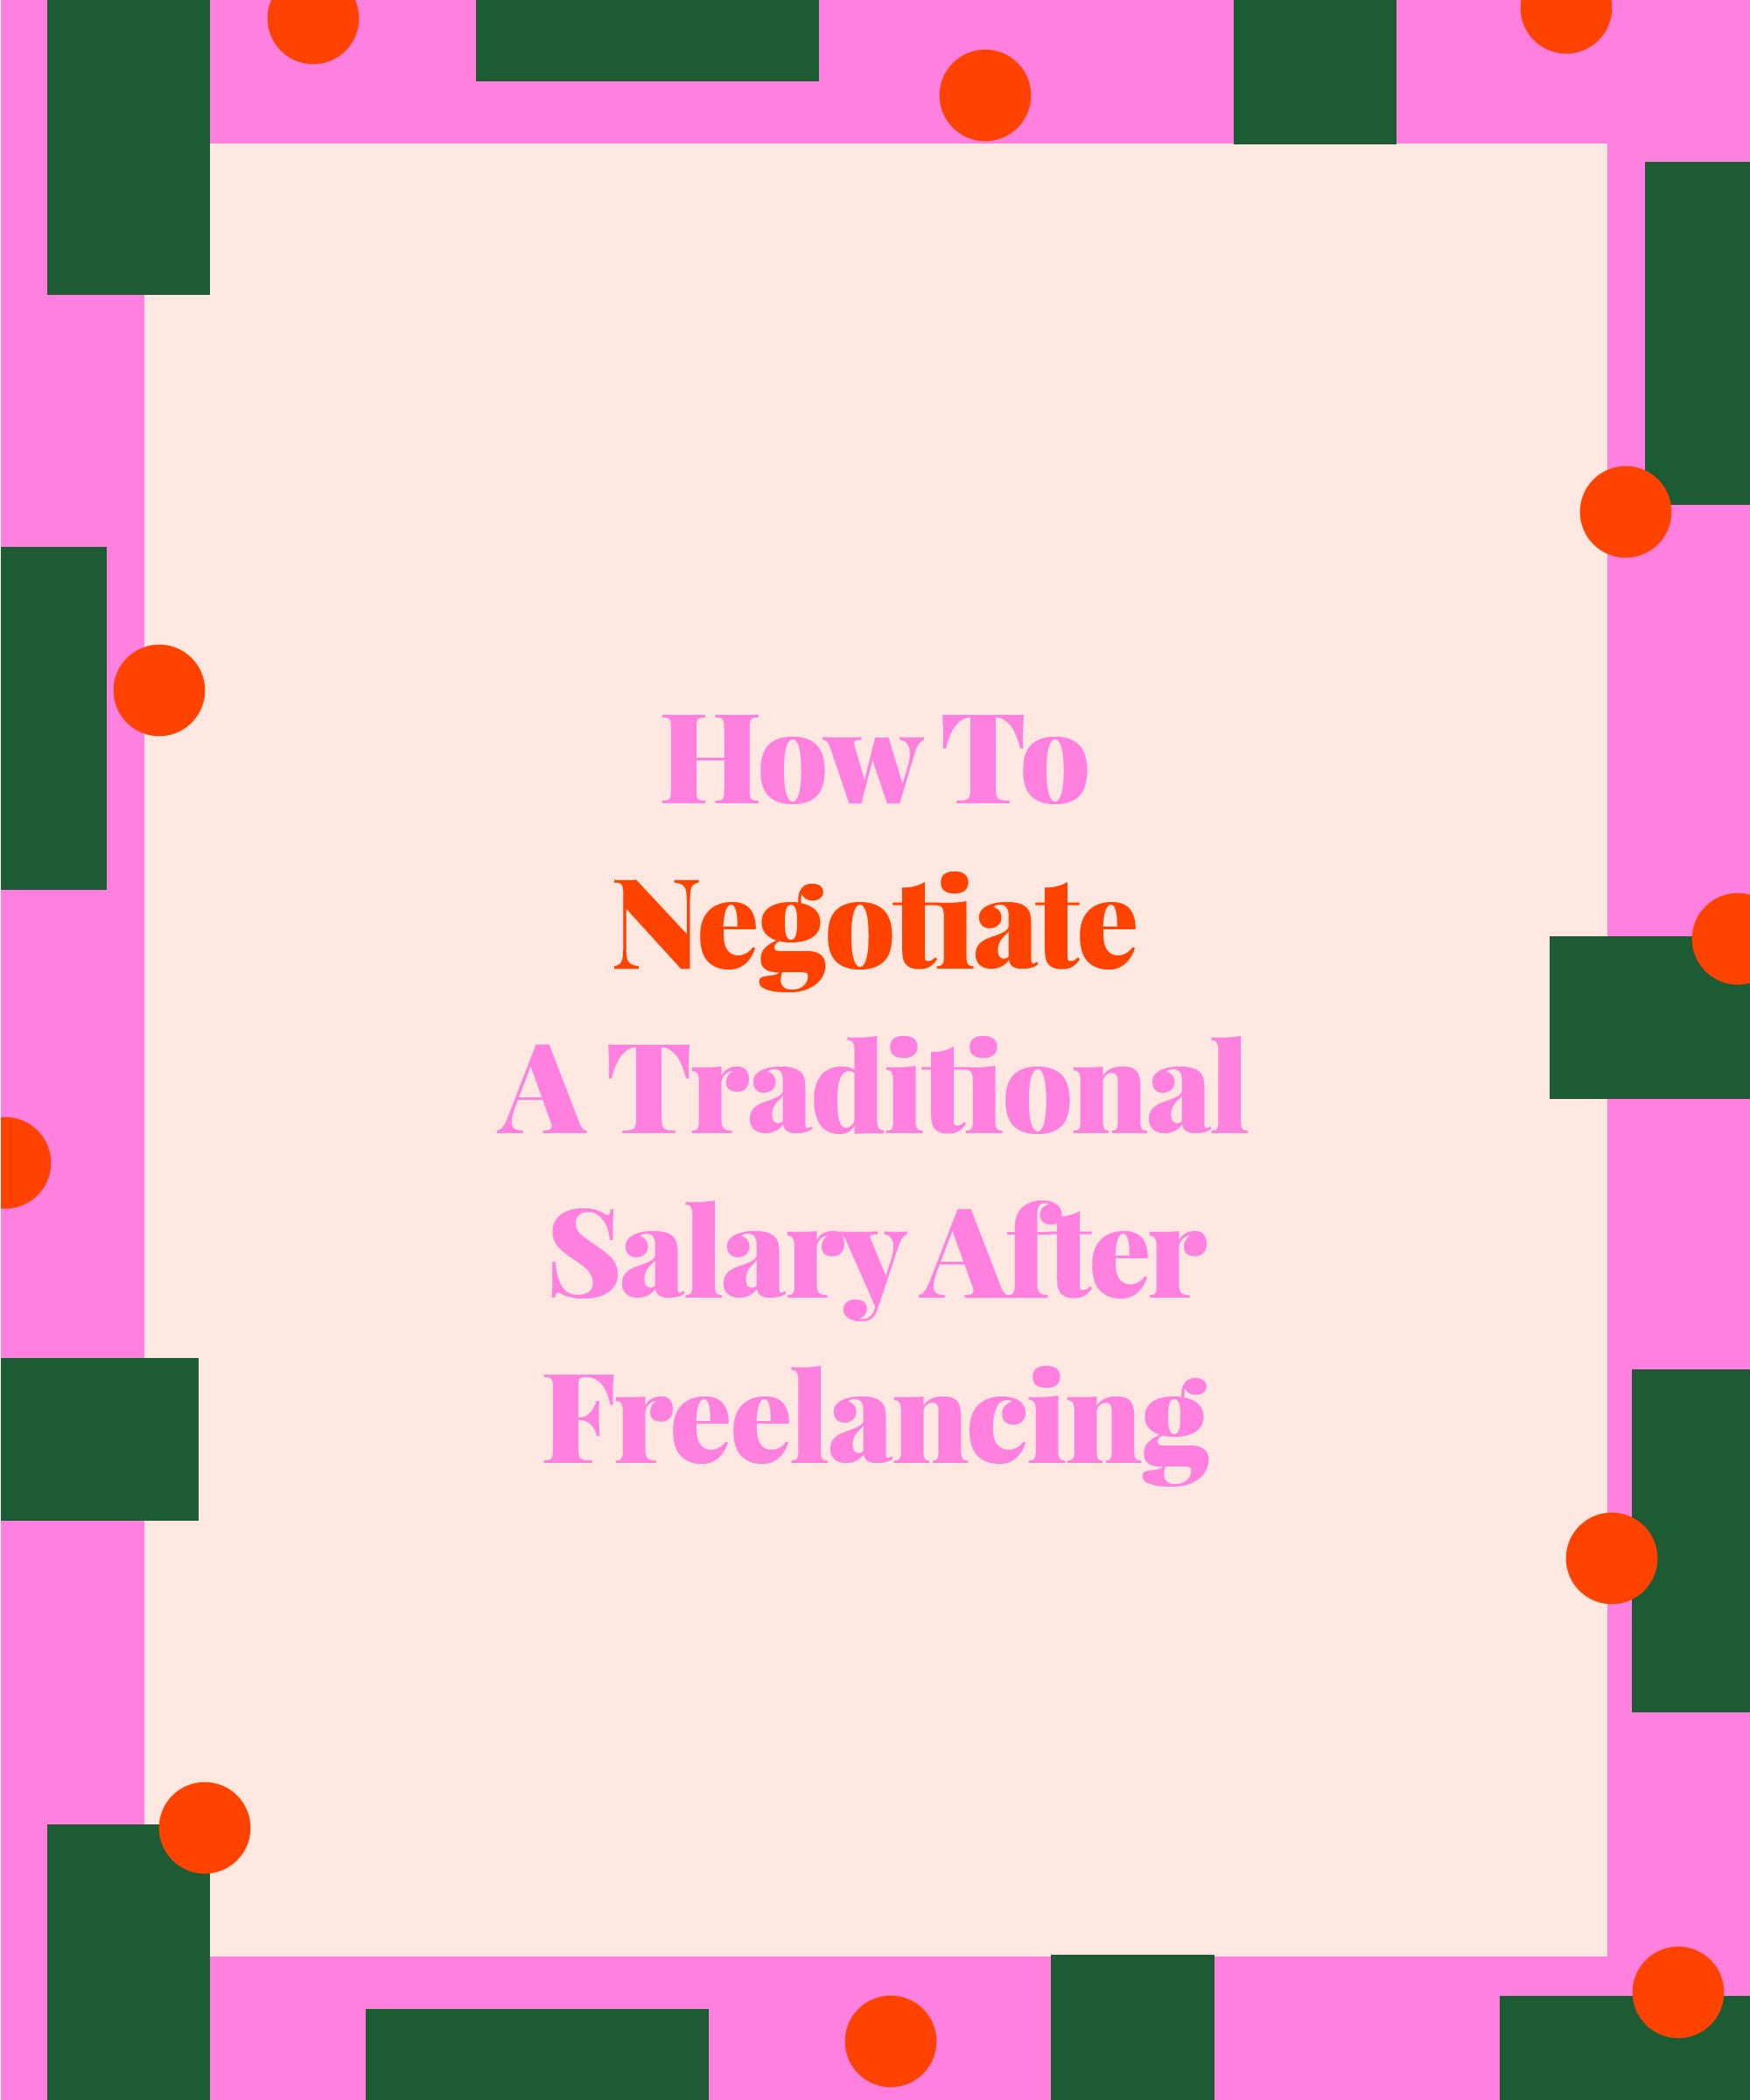 graphic designer ok with salary drop after freelancing